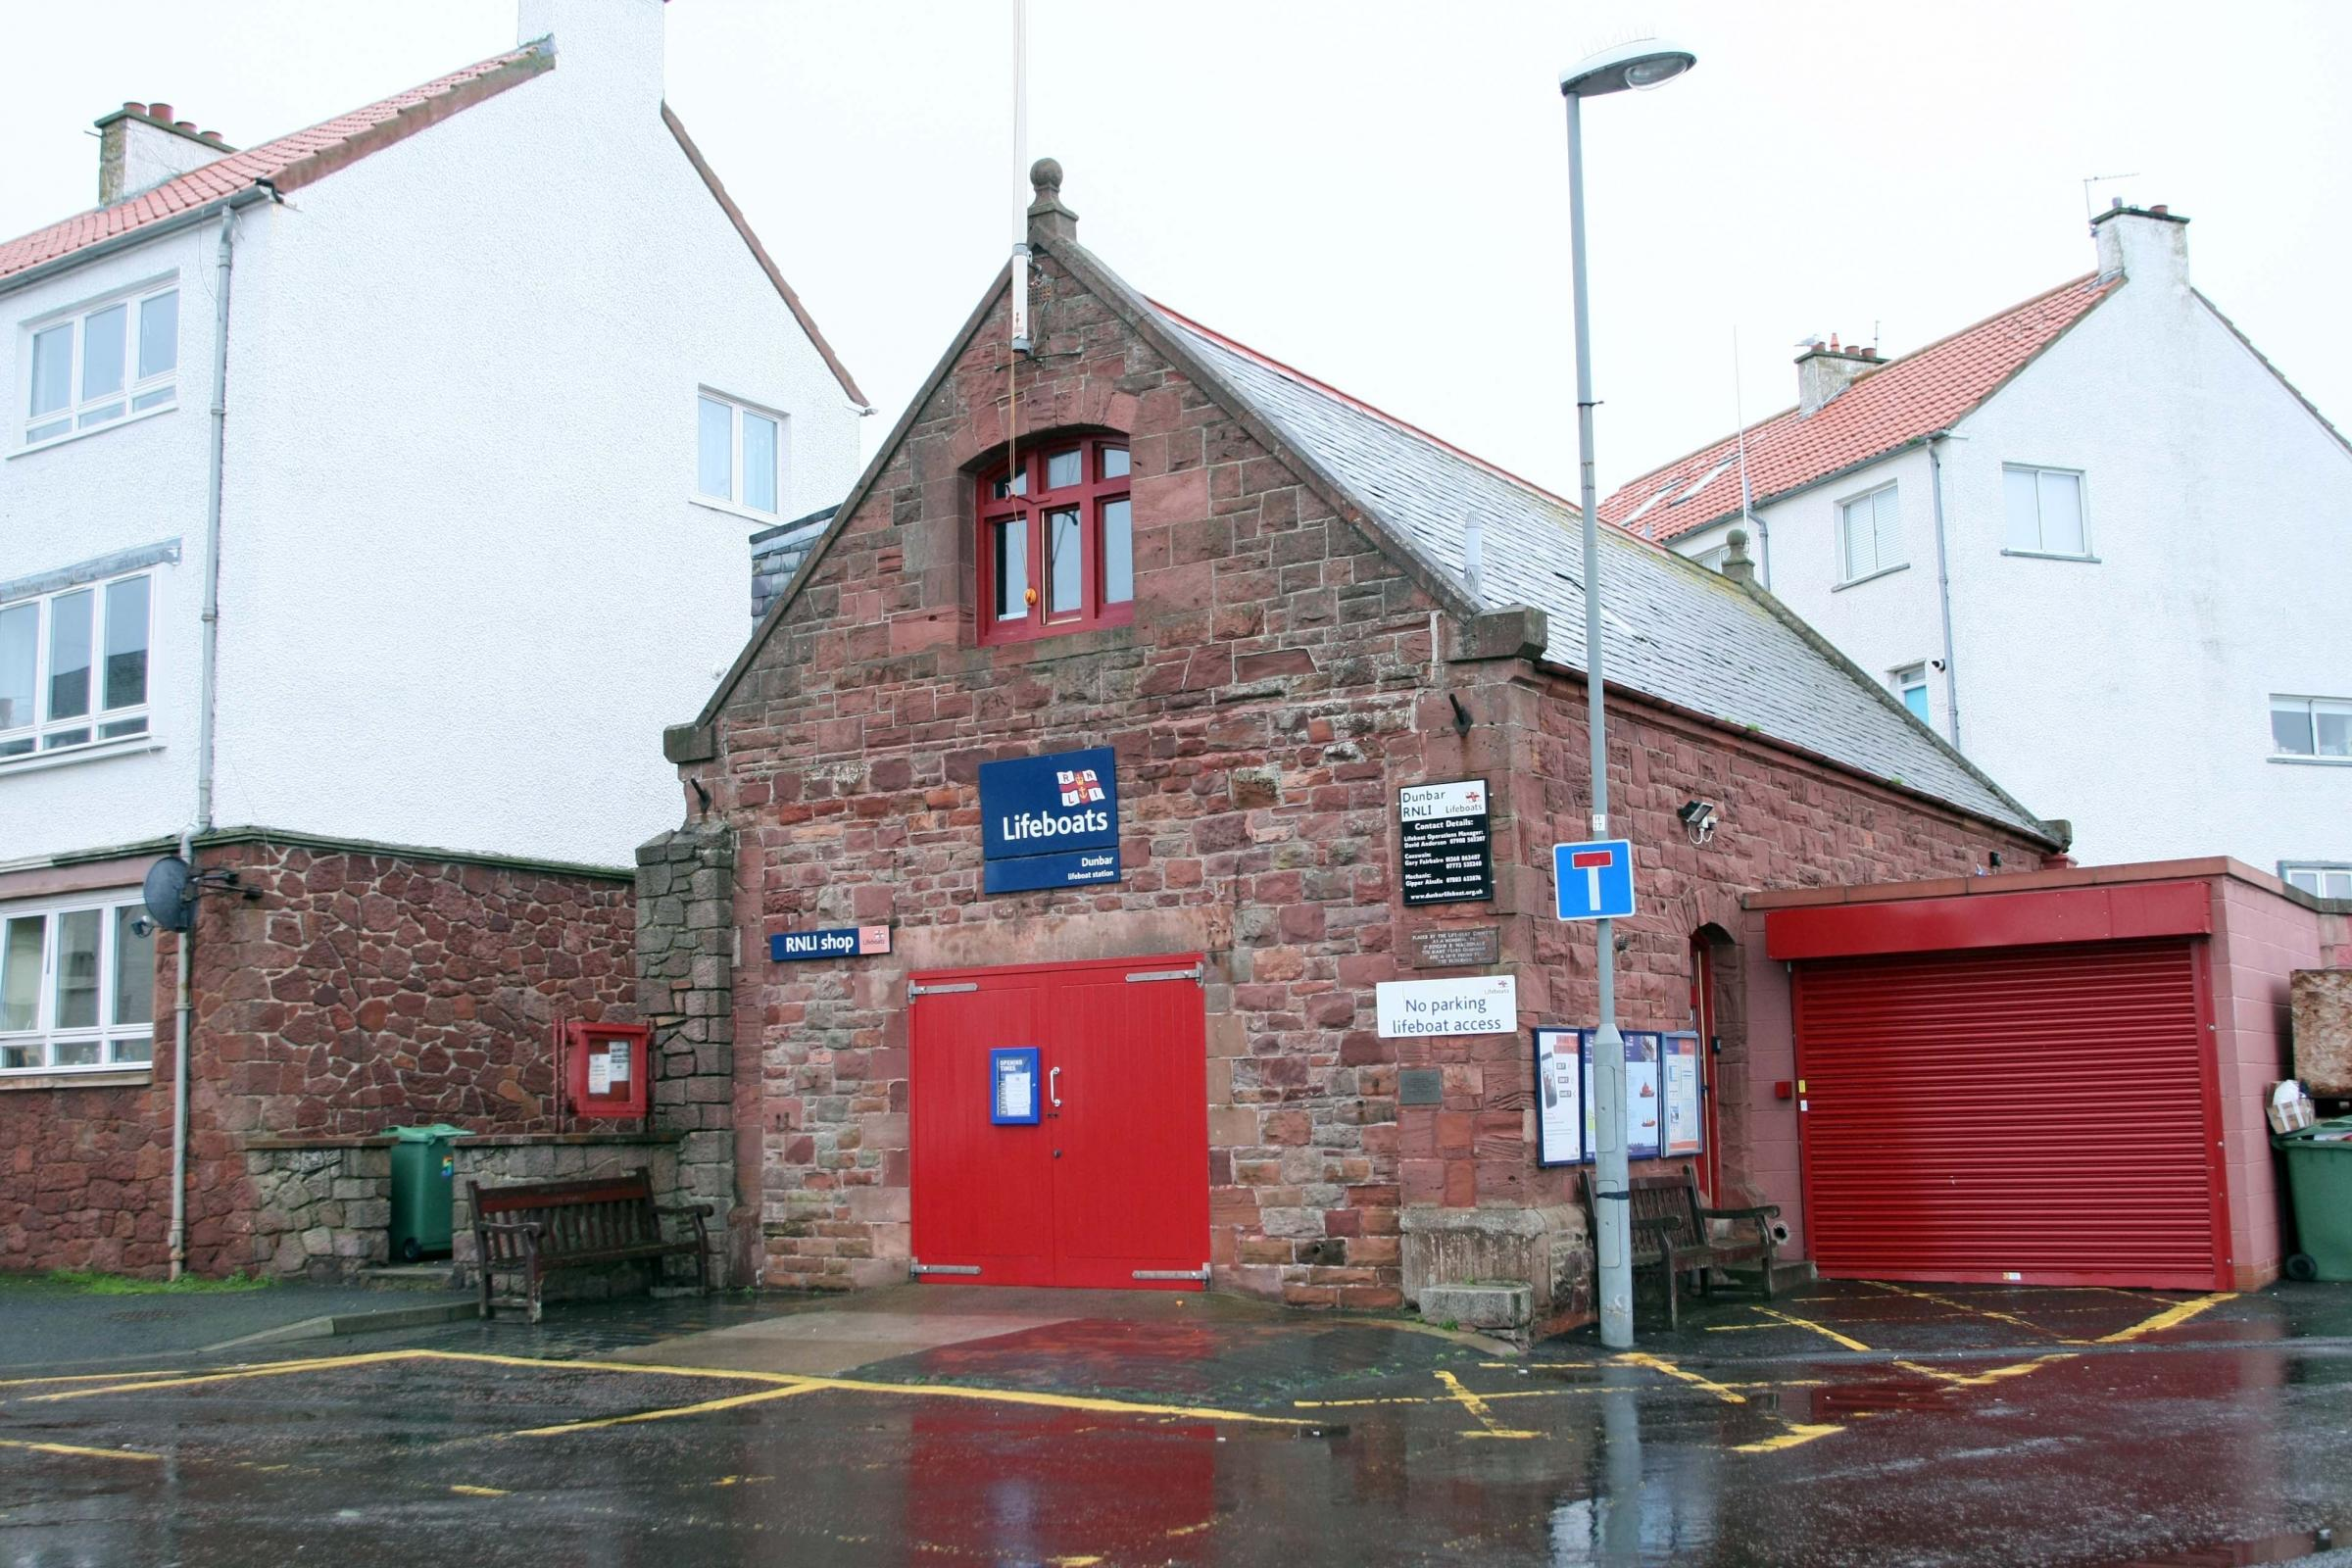 Ambitious plans are being drawn up to revamp Dunbar's lifeboat station